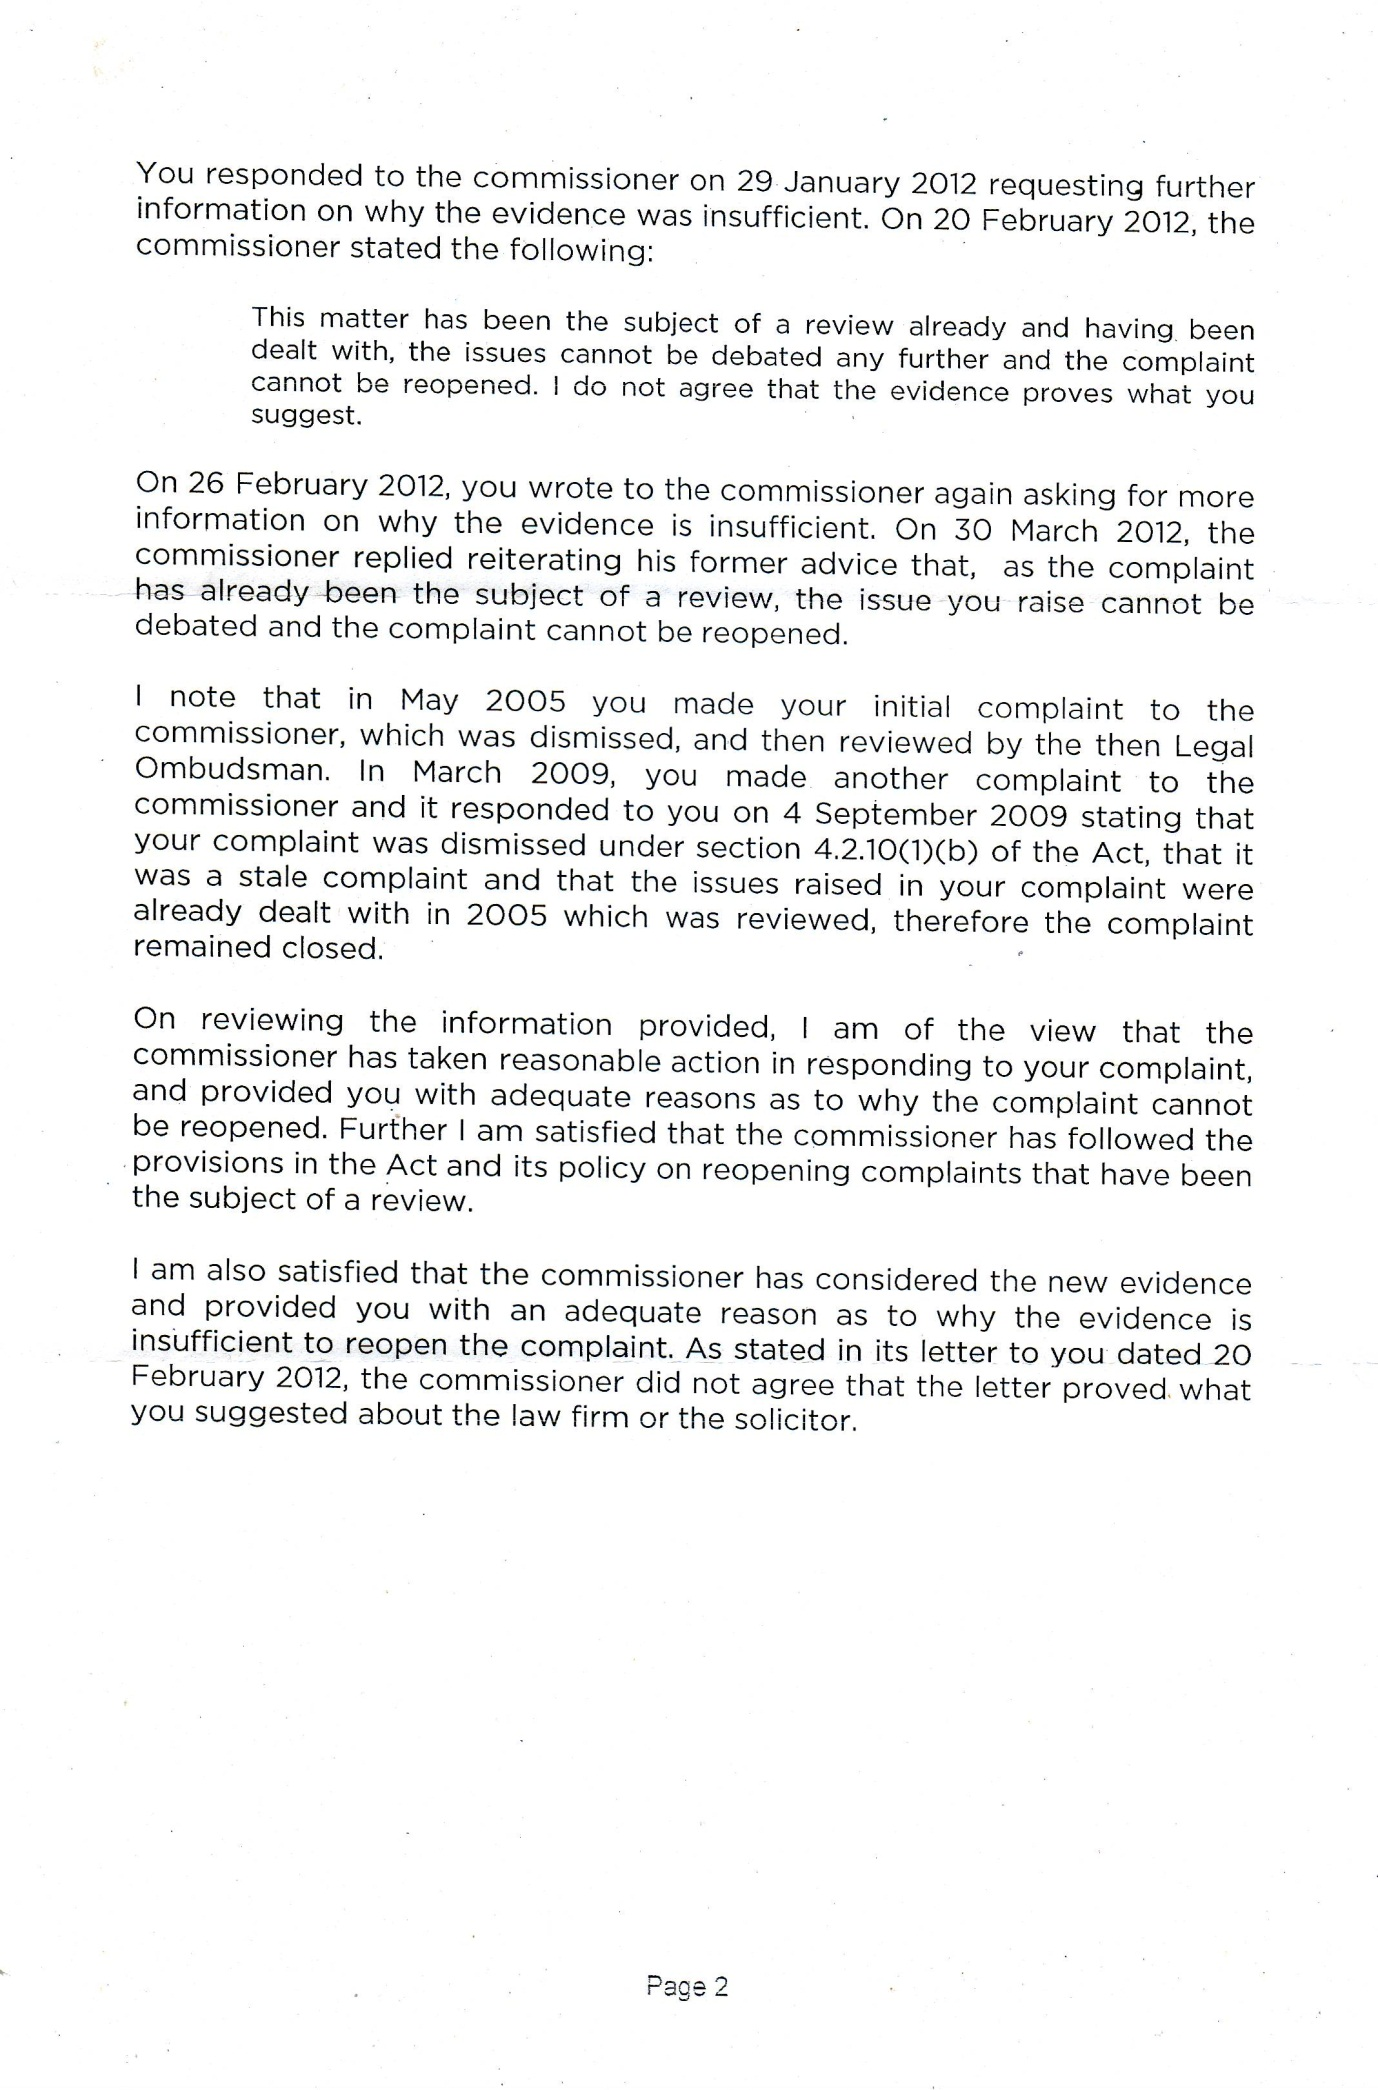 ombudsman replydec 2012pg2 001